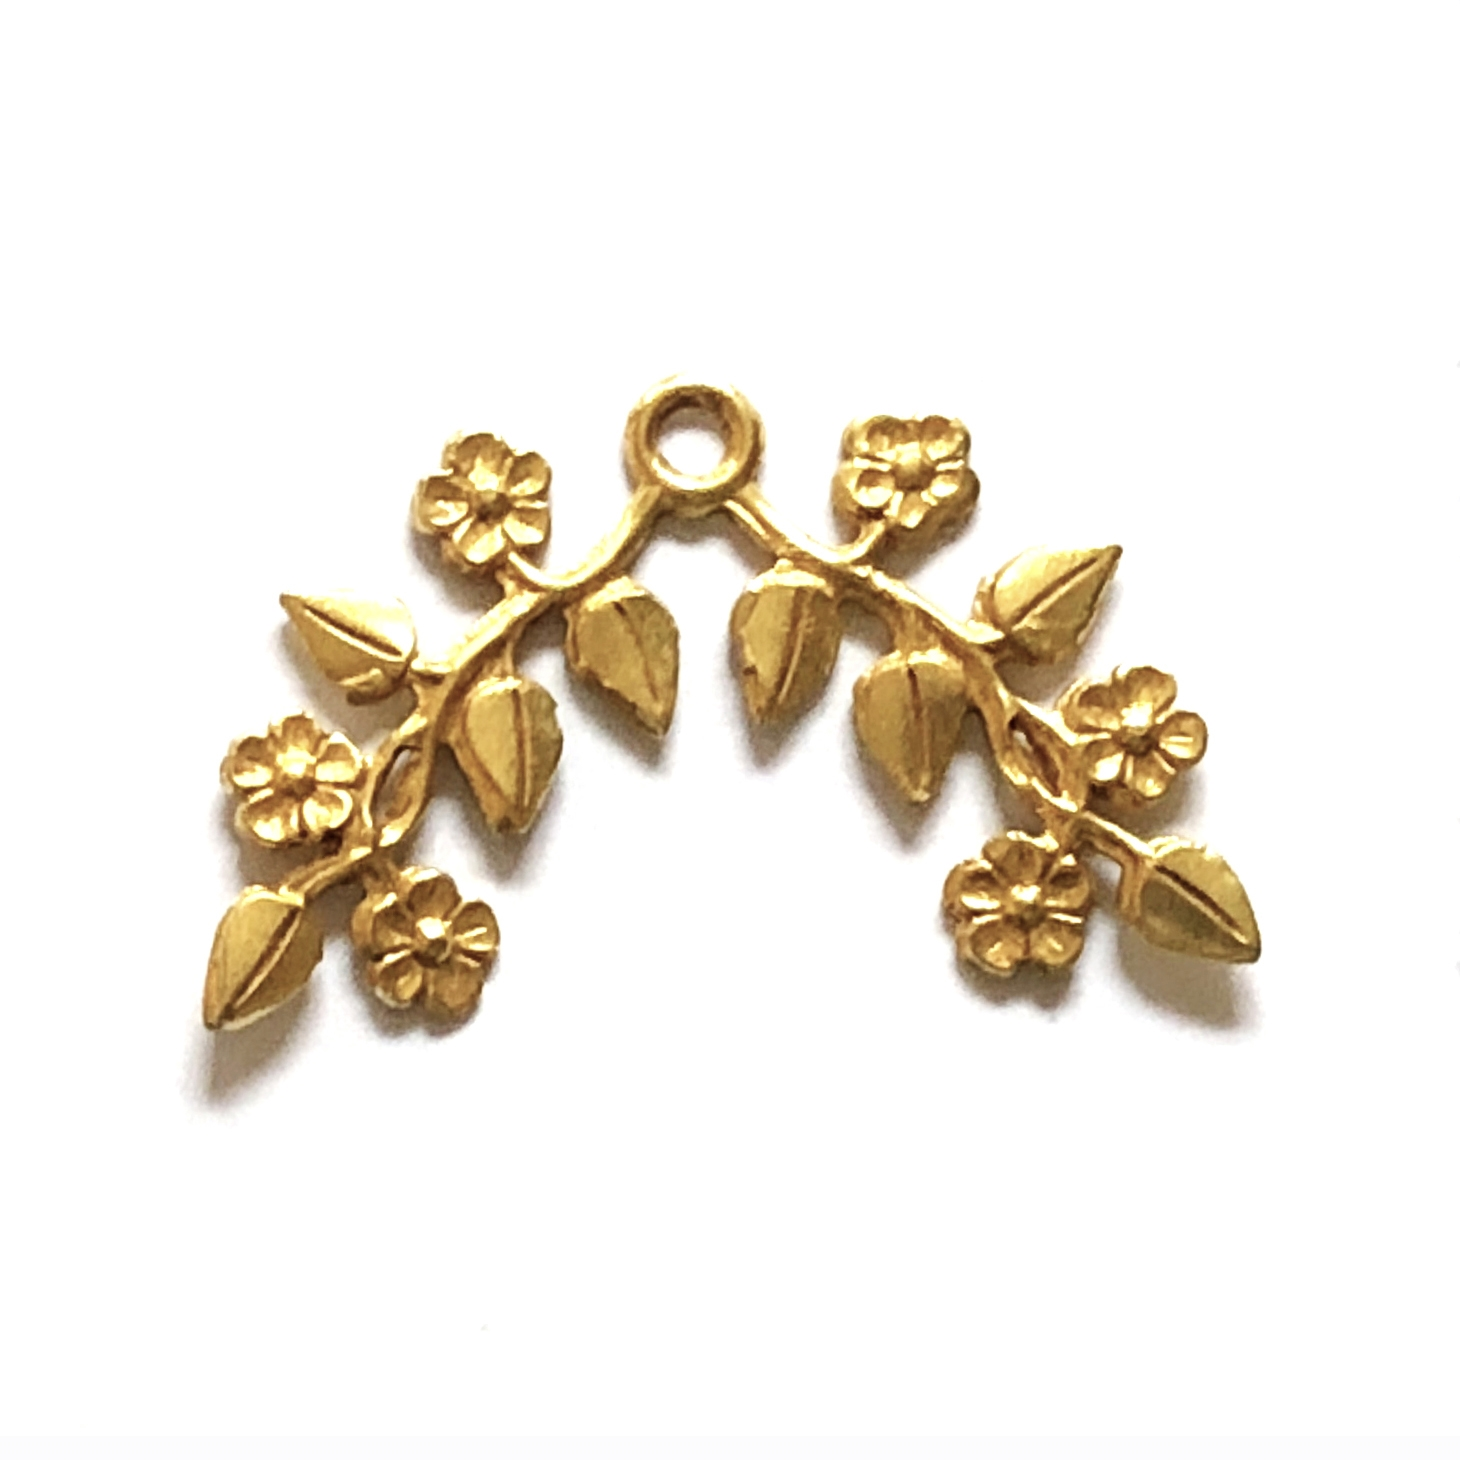 brass leaves, brass flowers, jewelry making, 08864, Brass ox, jewelry supplies, brass jewelry parts, vintage supplies, vintage jewelry, US made, nickel free, B'sue Boutiques, center drilled, beading leaves